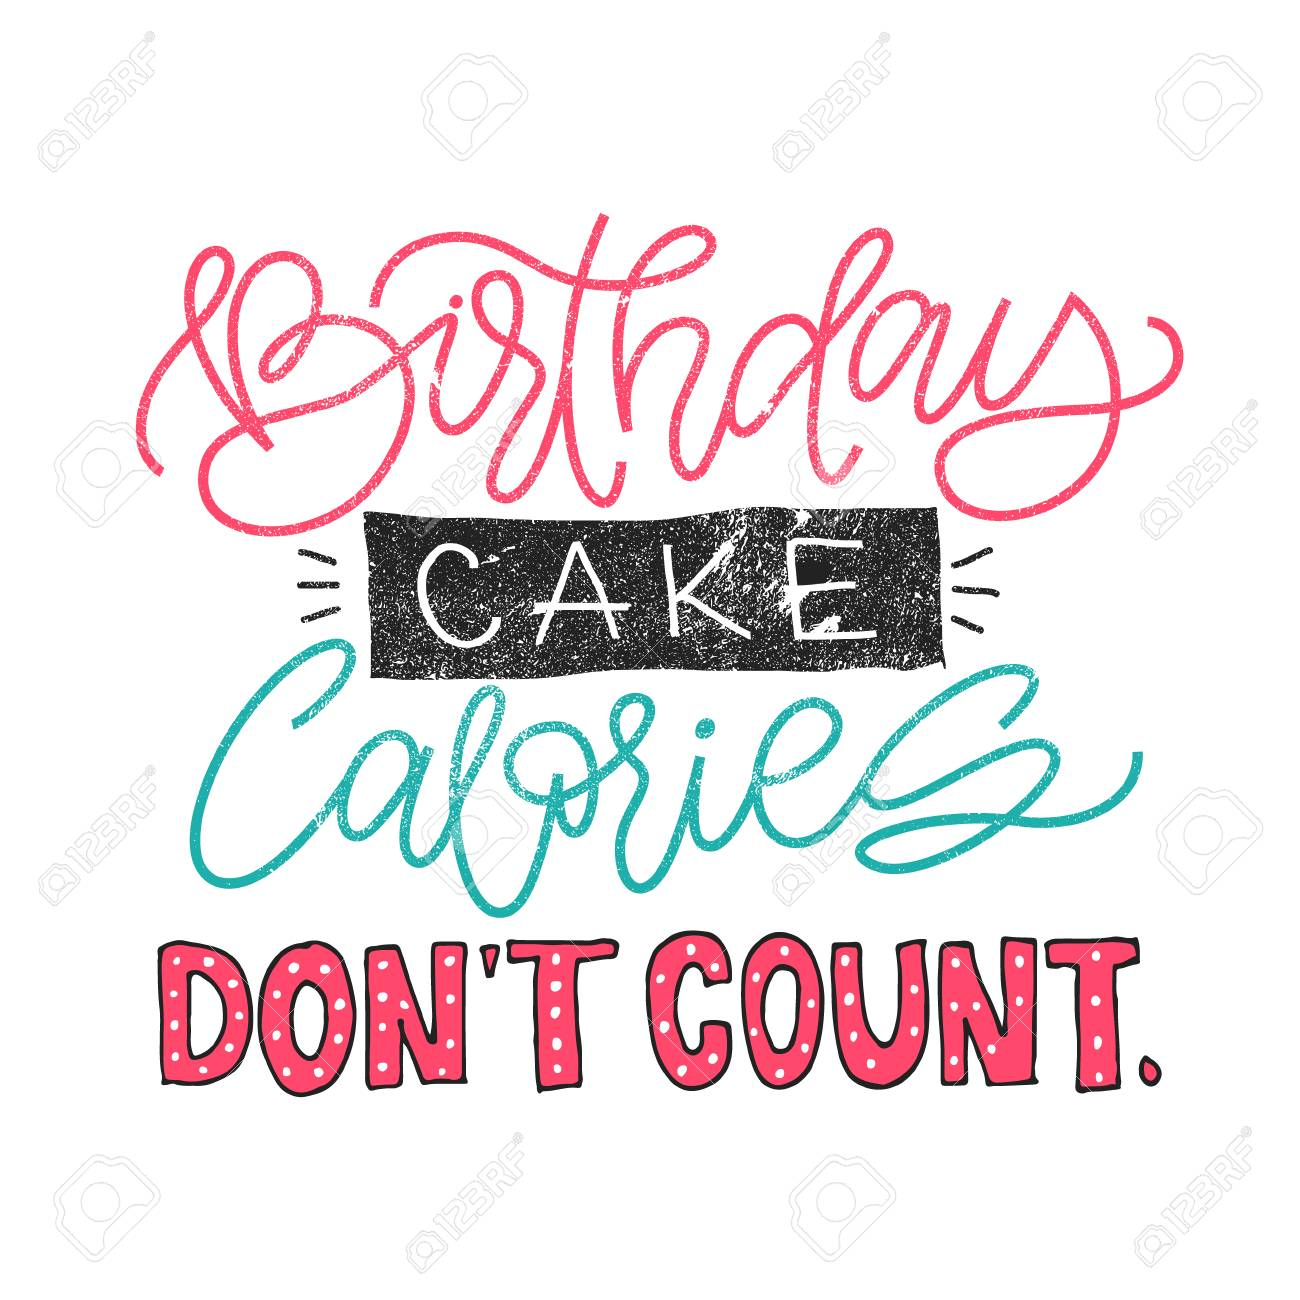 Stupendous Birthday Cake Calories Dont Count Funny Quote About Weight Birthday Cards Printable Benkemecafe Filternl